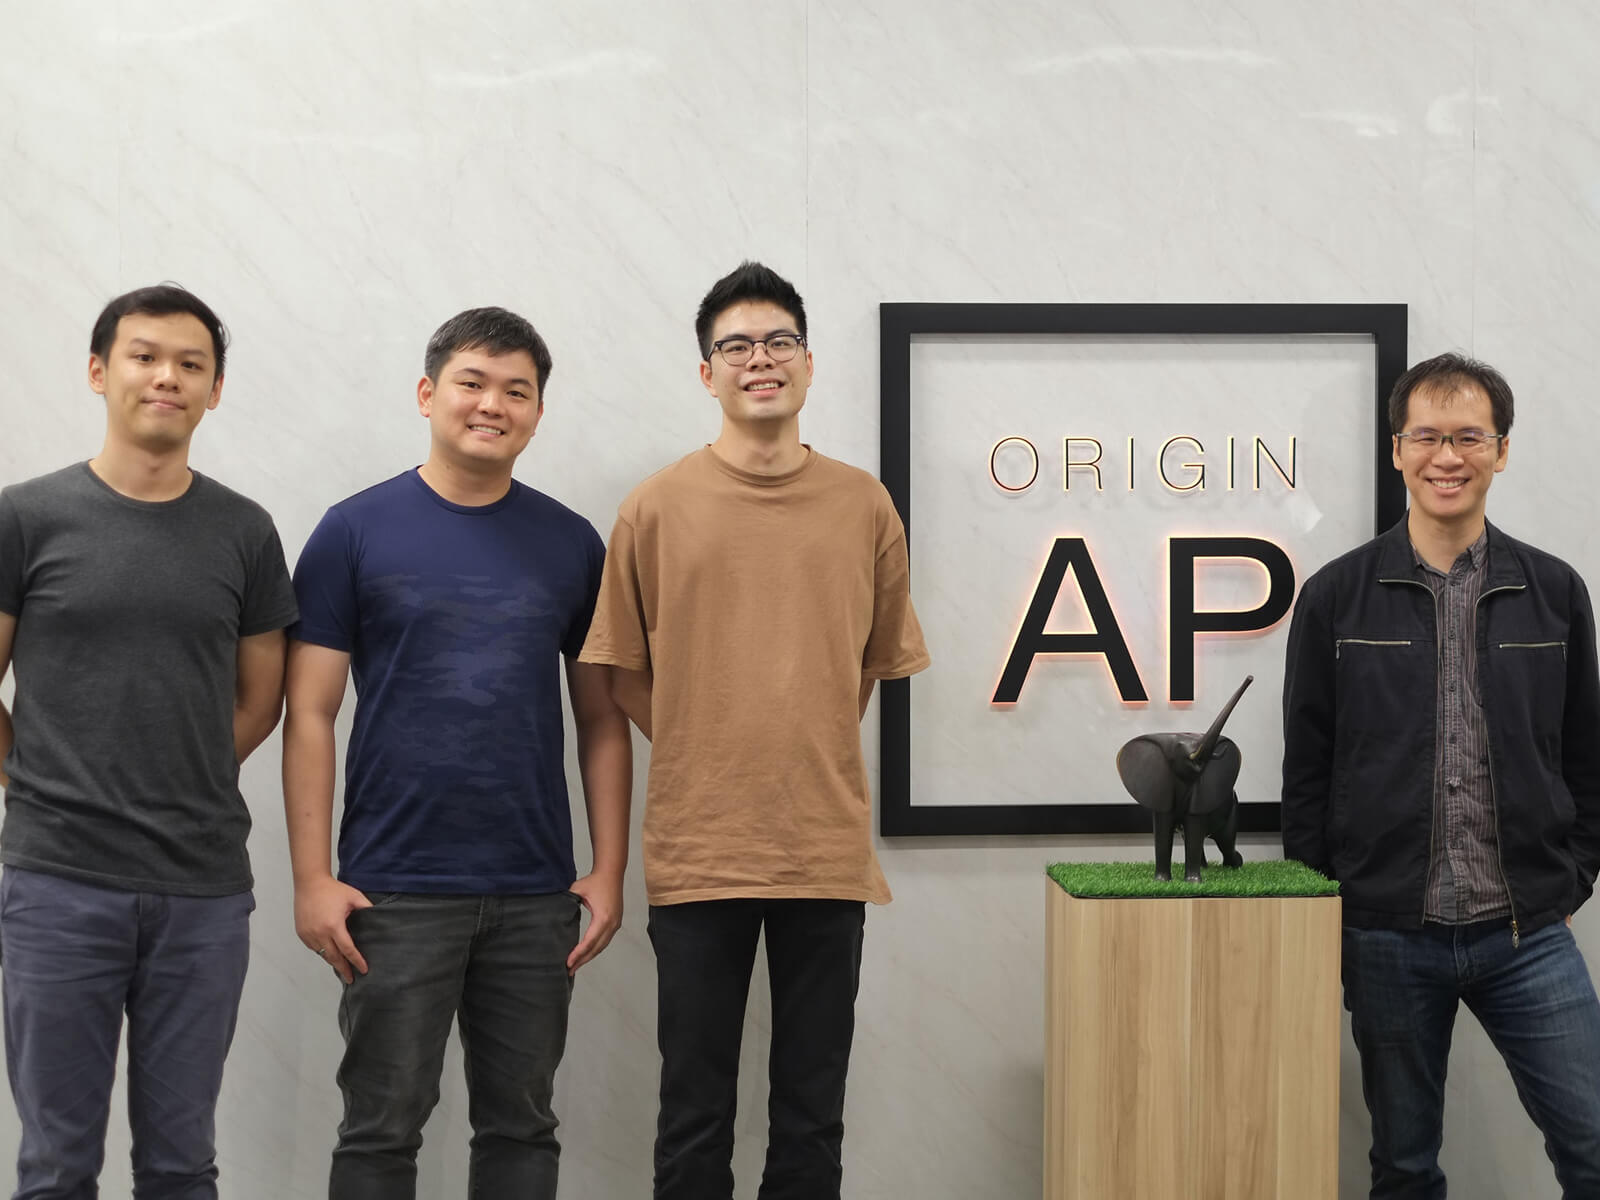 DigiPen alumni stand against a white marble wall with the Origin A P logo between them